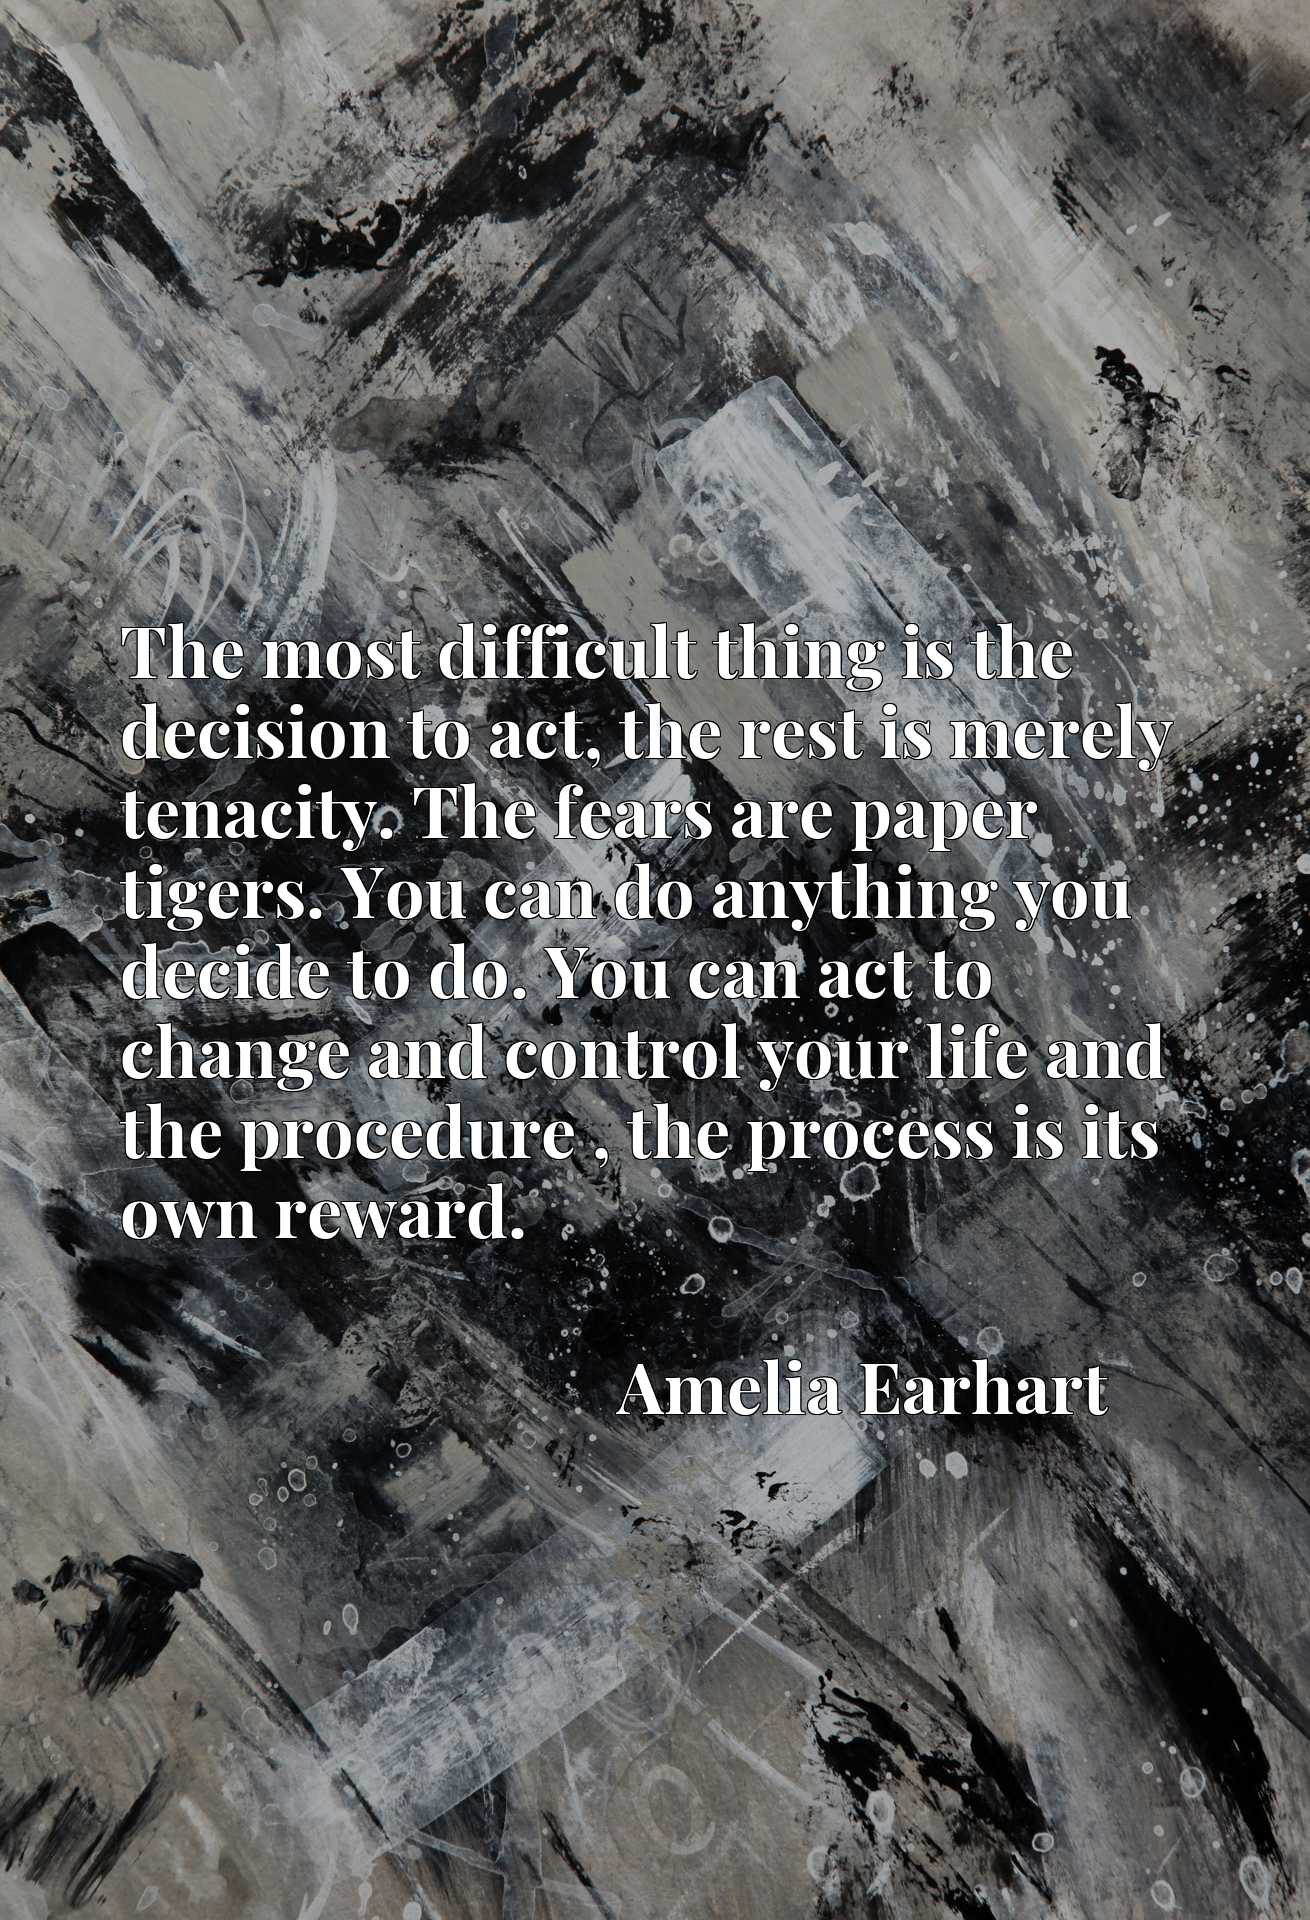 The most difficult thing is the decision to act, the rest is merely tenacity. The fears are paper tigers. You can do anything you decide to do. You can act to change and control your life and the procedure , the process is its own reward.